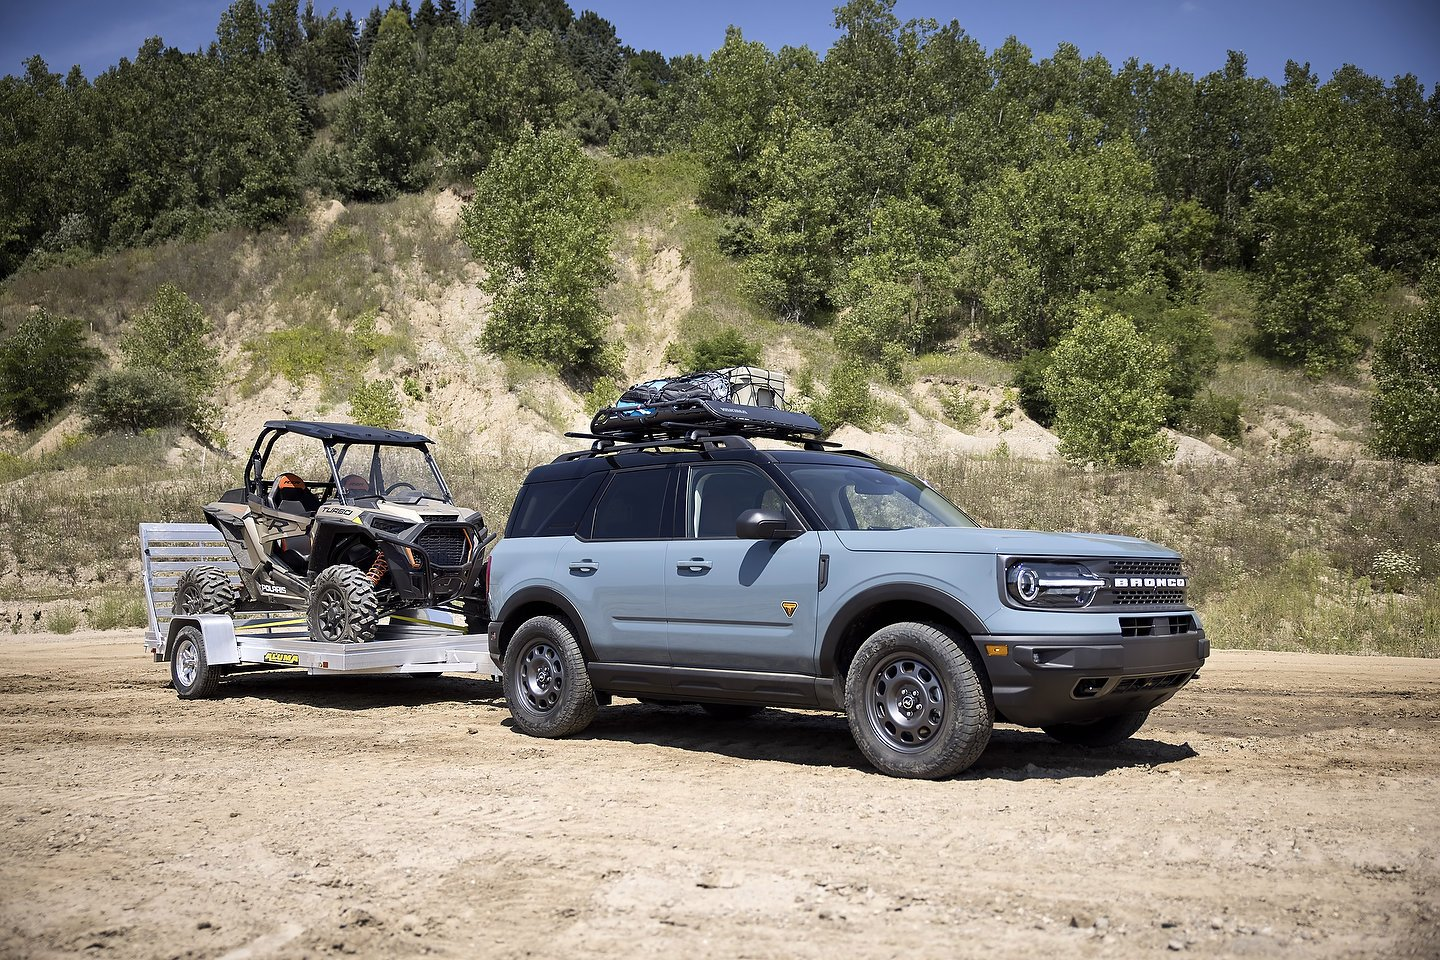 2021 Ford Bronco Sport Fuel Economy Ratings Released In The Us Motor Illustrated